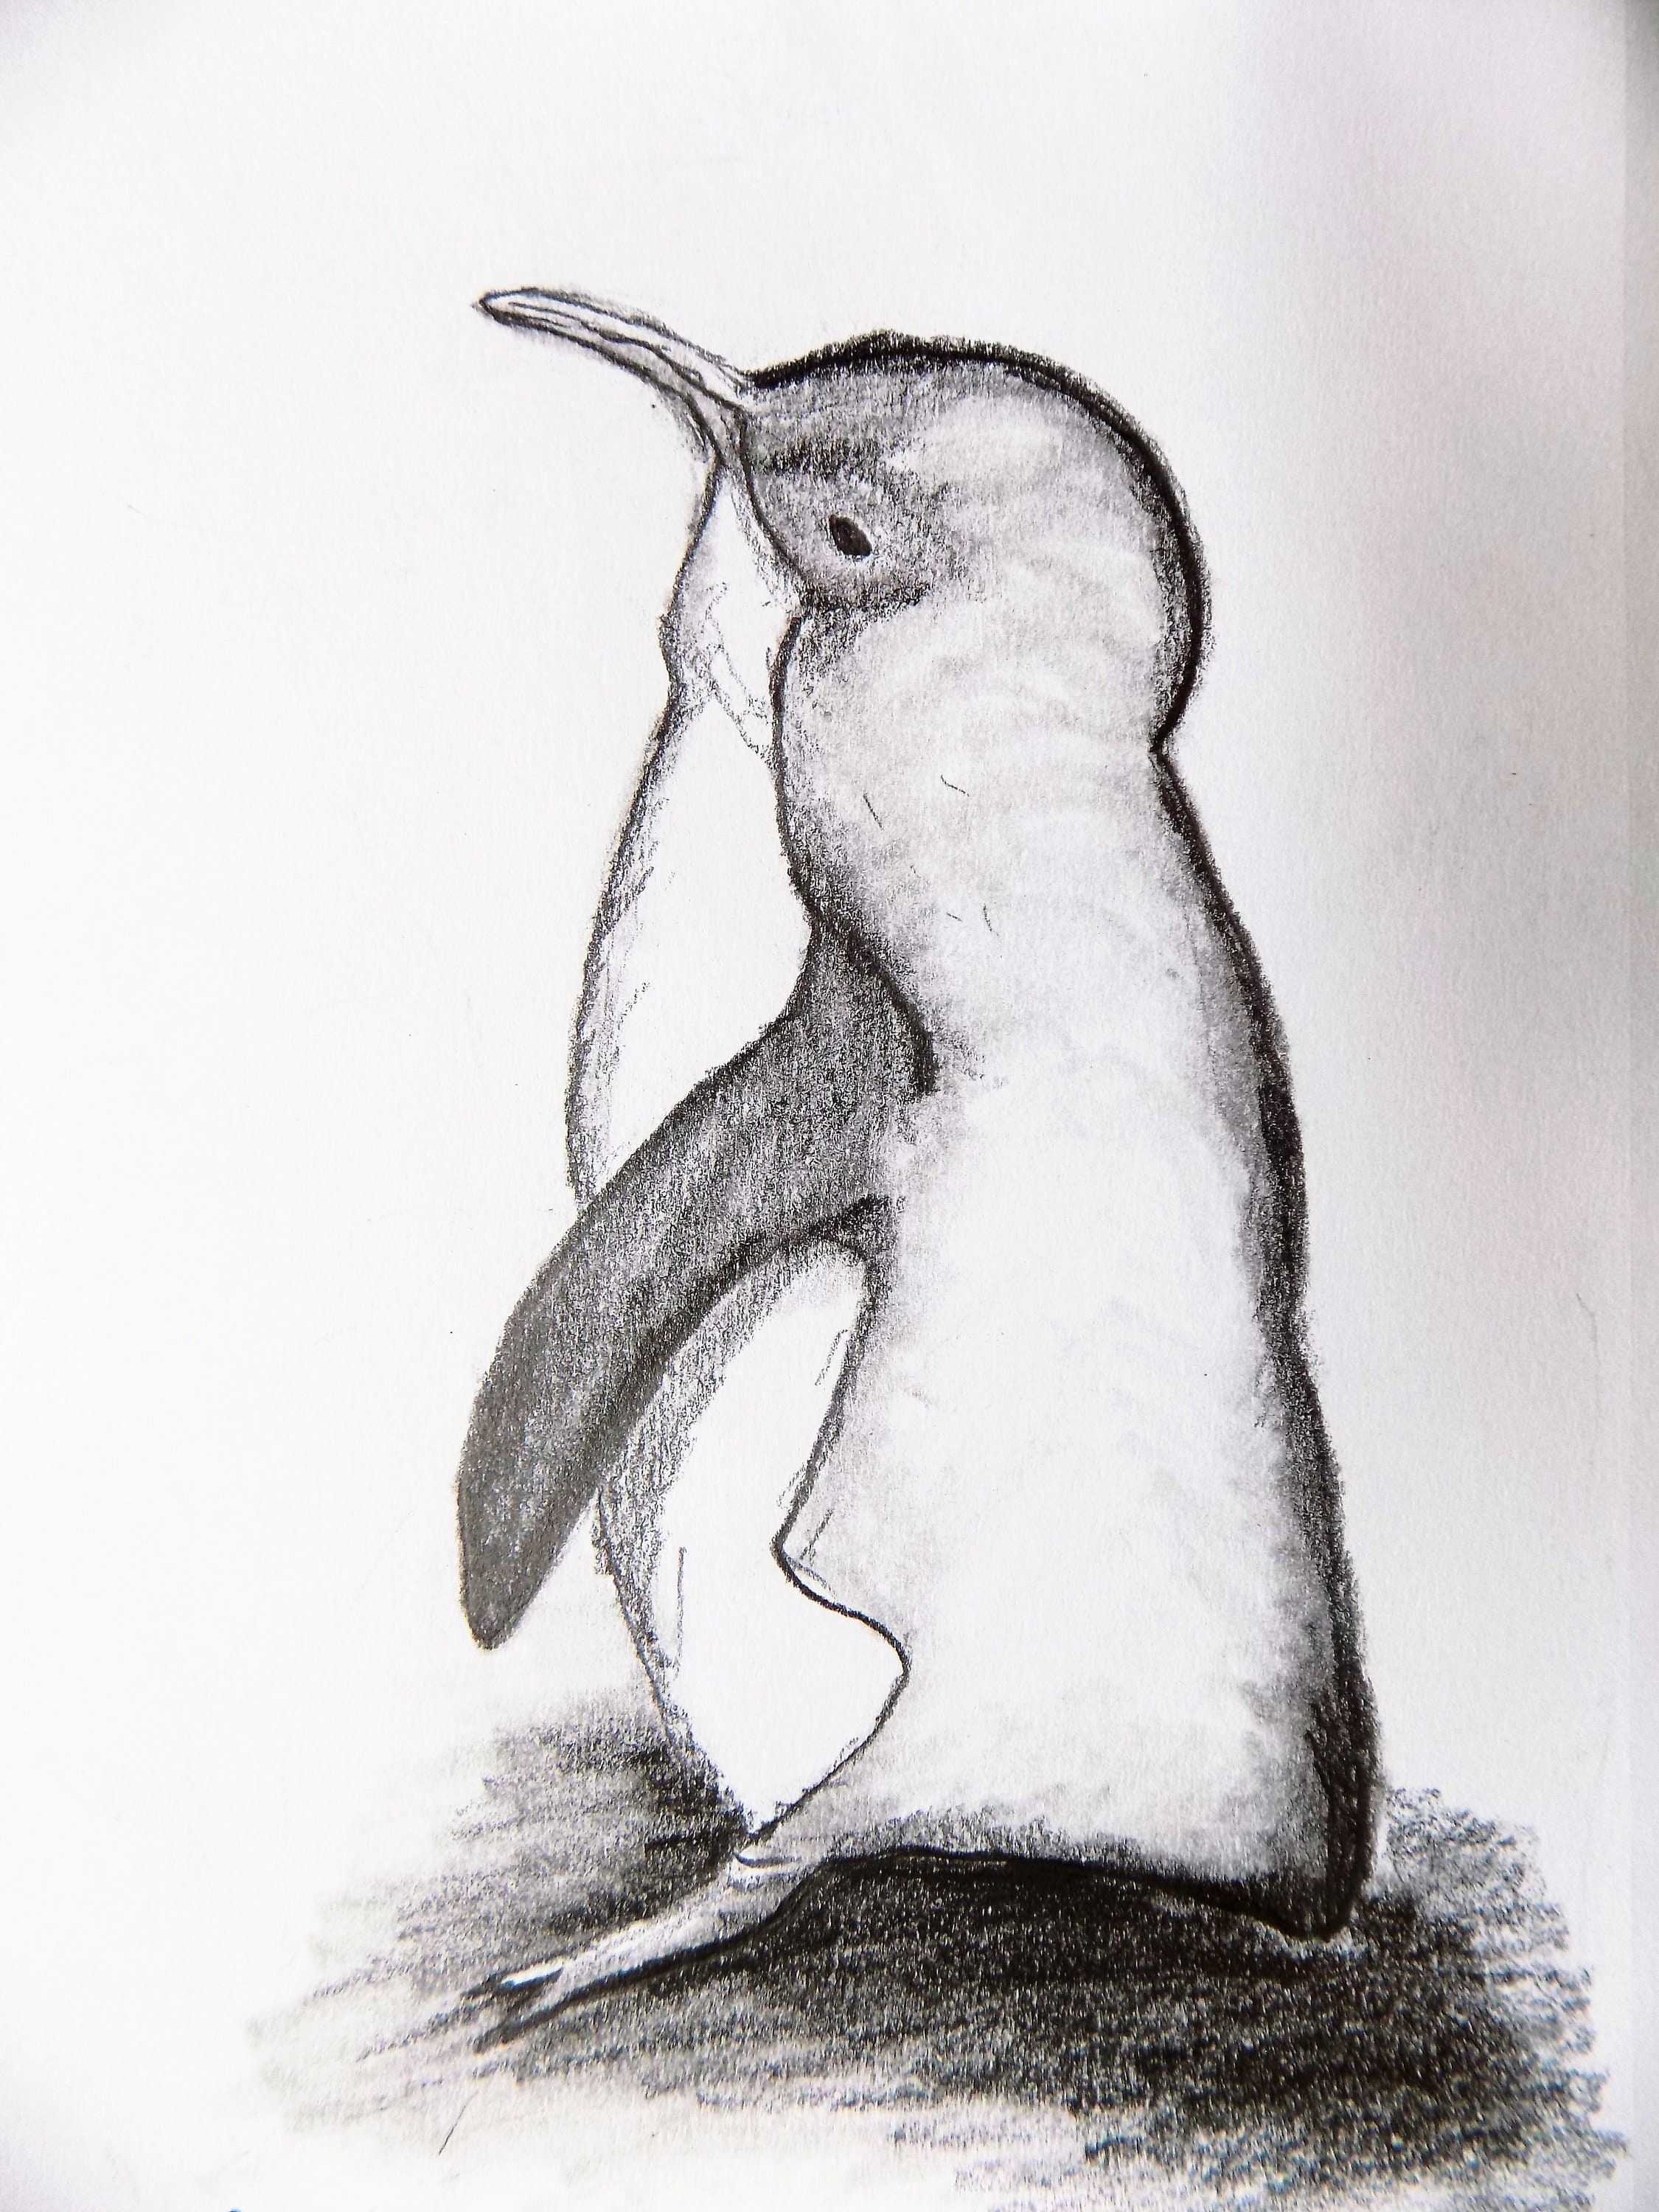 Drawing of penguin pencil sketch graphite drawing original pencil drawing little blue penguin